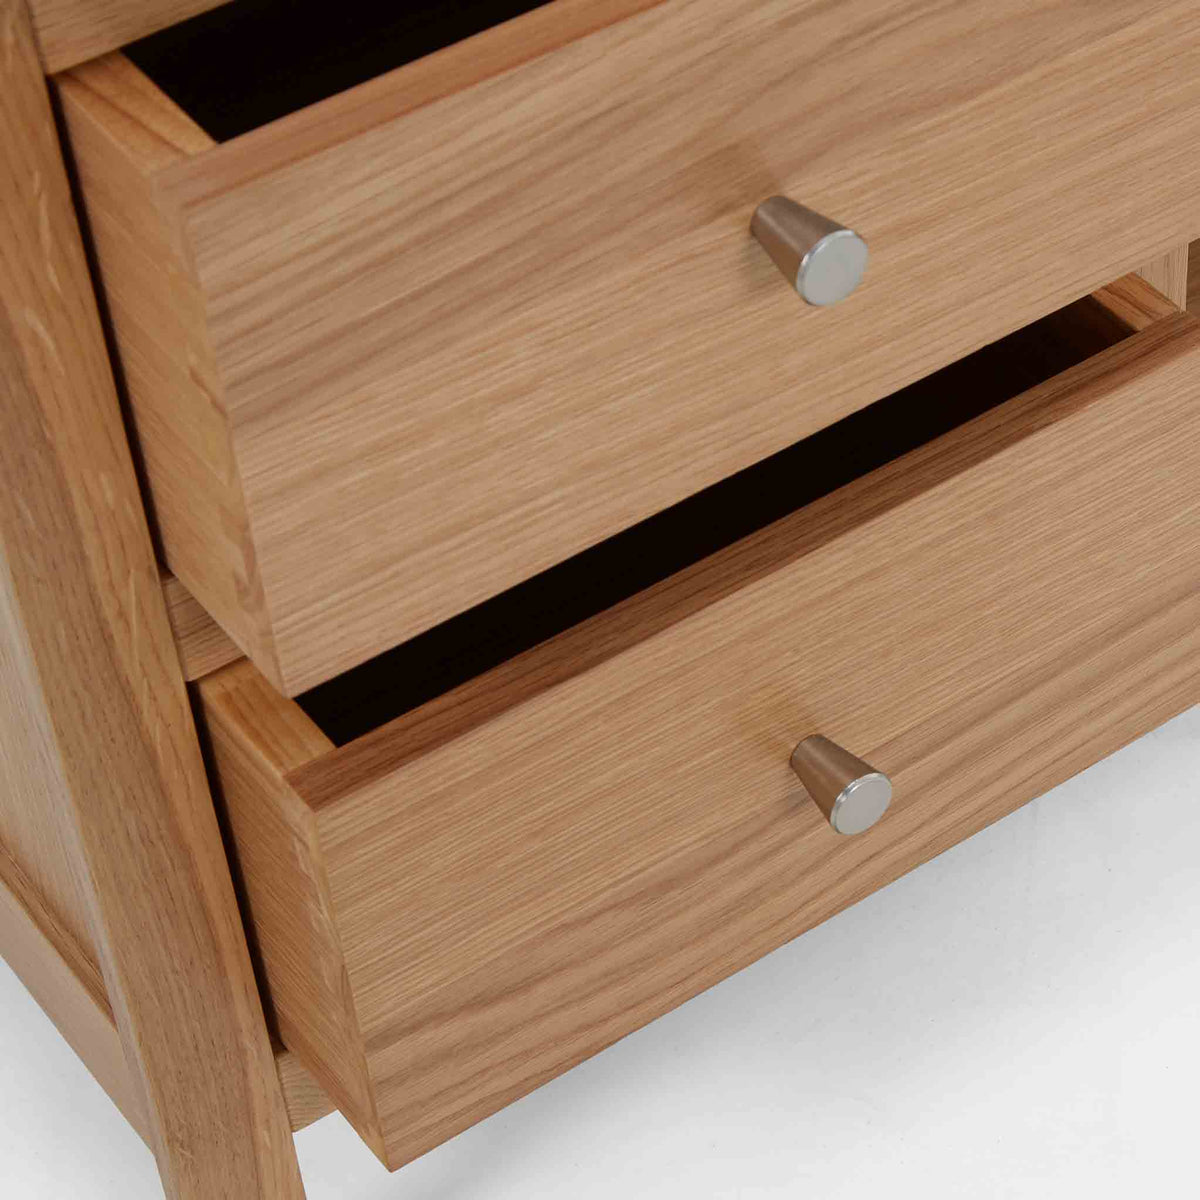 Close up of 2 drawers on the Falmouth Oak 90cm TV Stand by Roseland Furniture